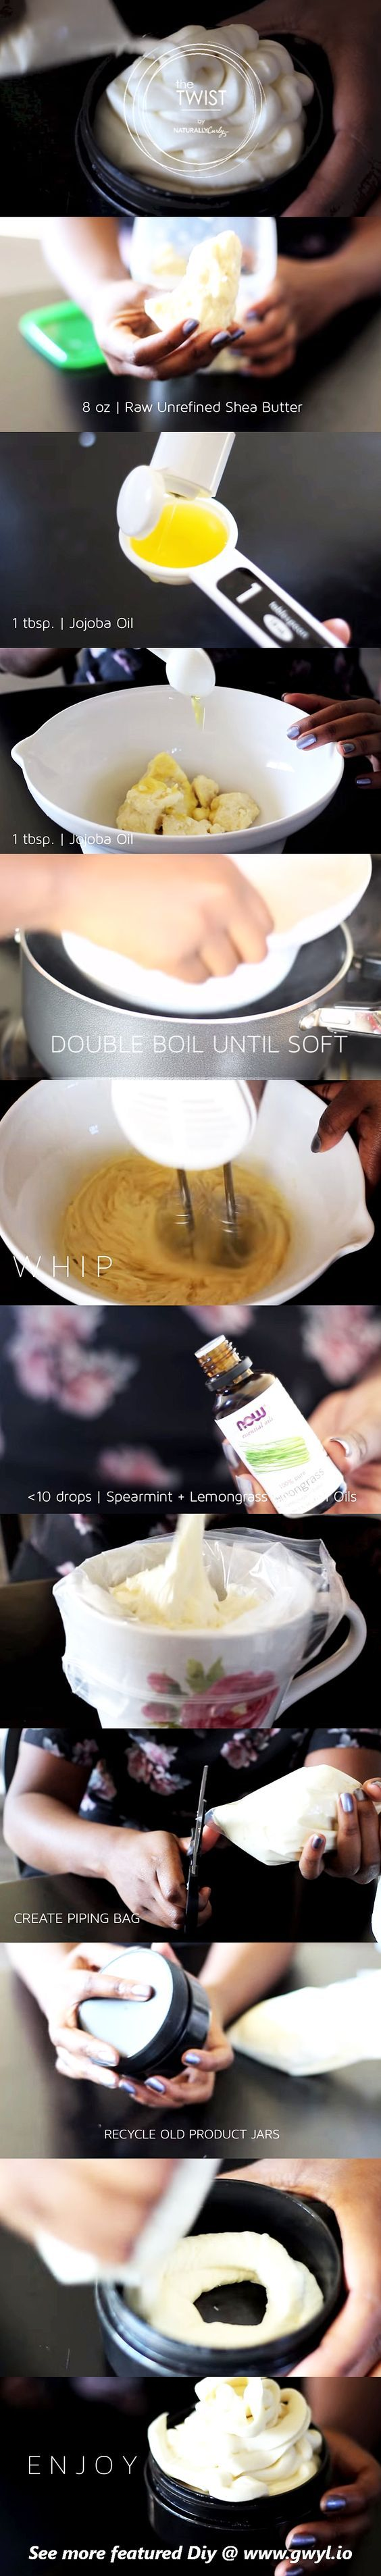 DIY Whipped Shea Butter made with pure oils and essential oils, is a great way of reviving moisture on your tired and dry skin, especially in cold weathers. See video and written instructions here==>   Lucious DIY Whipped Shea Butter For Hair & Skin   http://gwyl.io/diy-whipped-shea-butter/